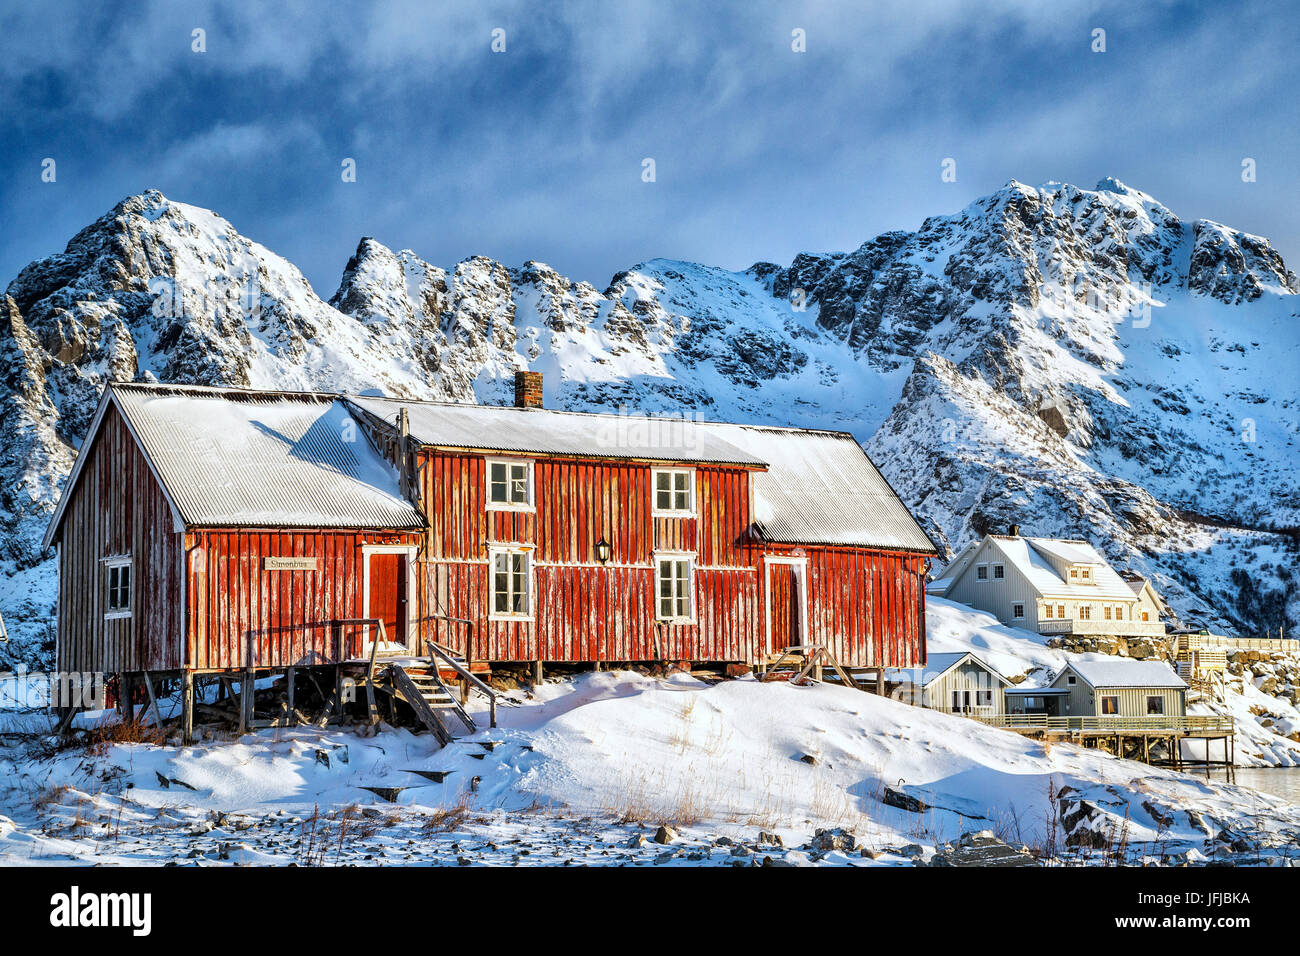 Typical red house of Lofoten Islands, Henningsvaer, Norway, Europe - Stock Image